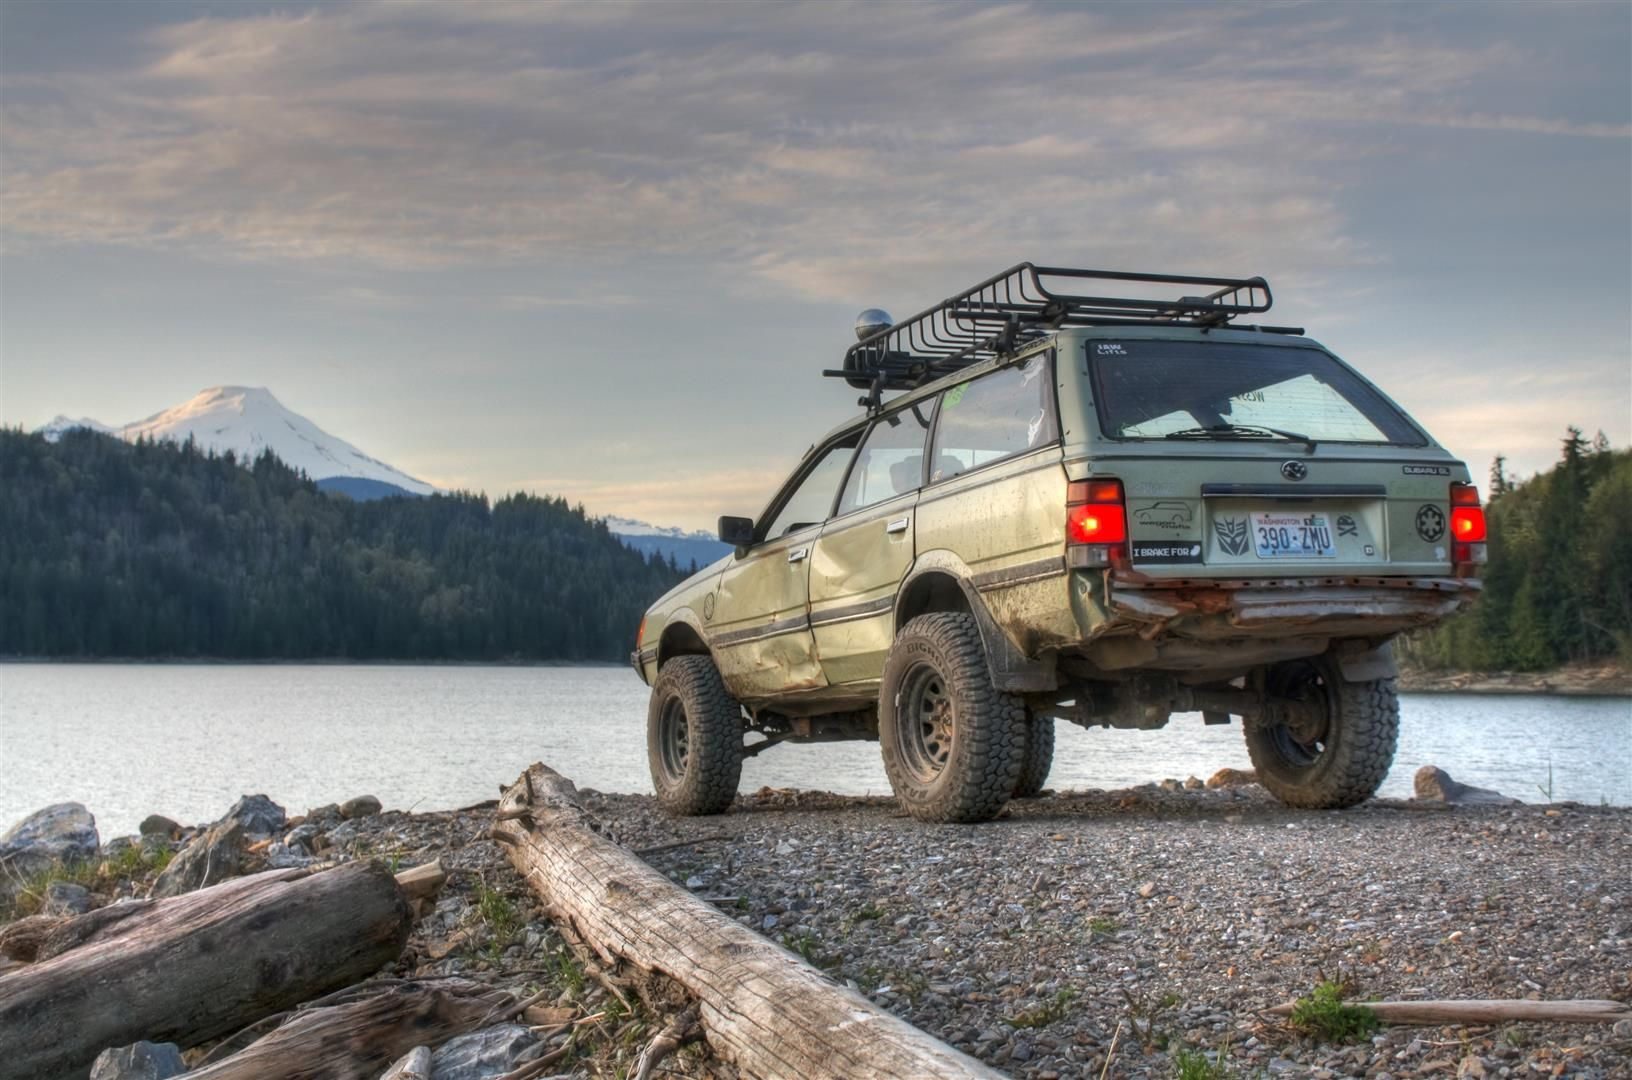 subaru forester lifted rally - Google-søgning | Offroad